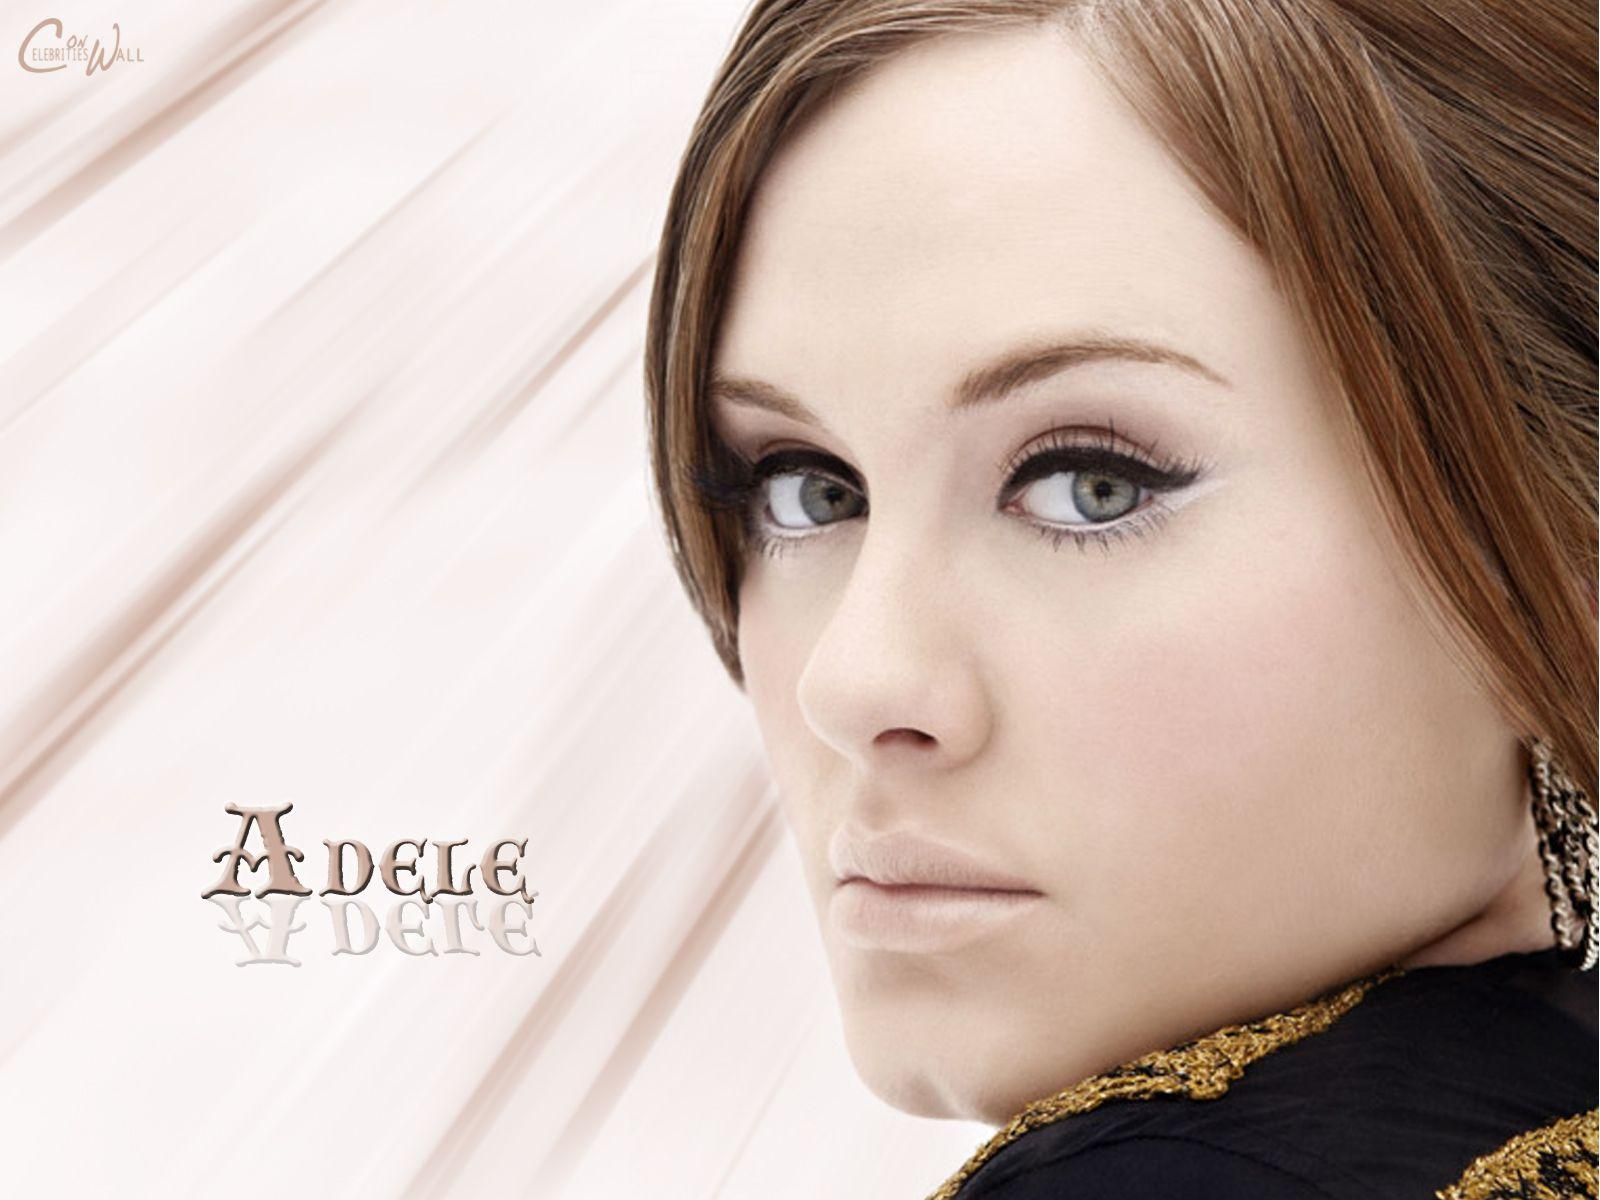 Mobile Adele Wallpapers